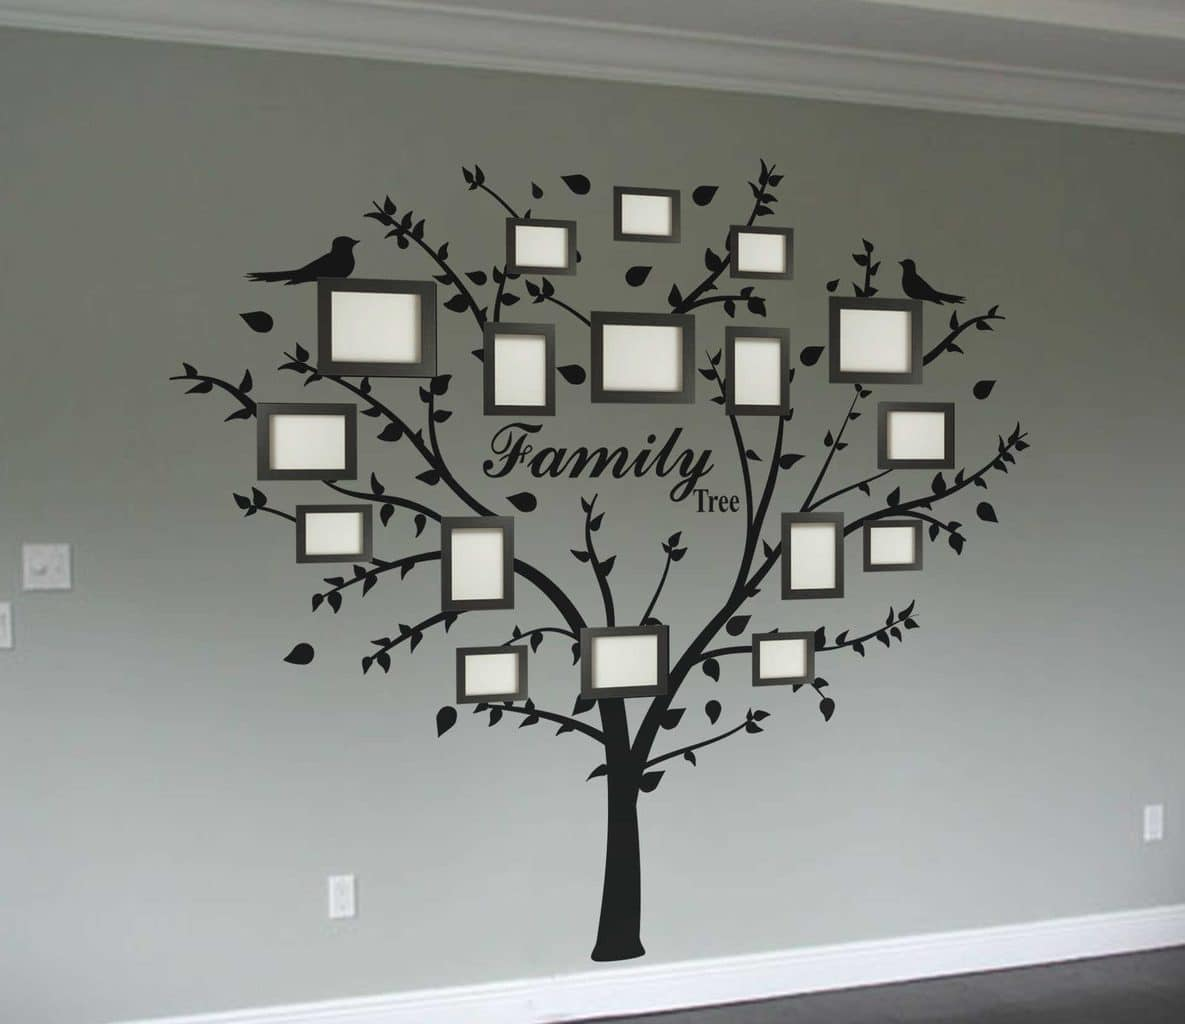 Family Photo Tree Wall Decal | Wall Decal Sticker Tree, Wall Decals Part 30